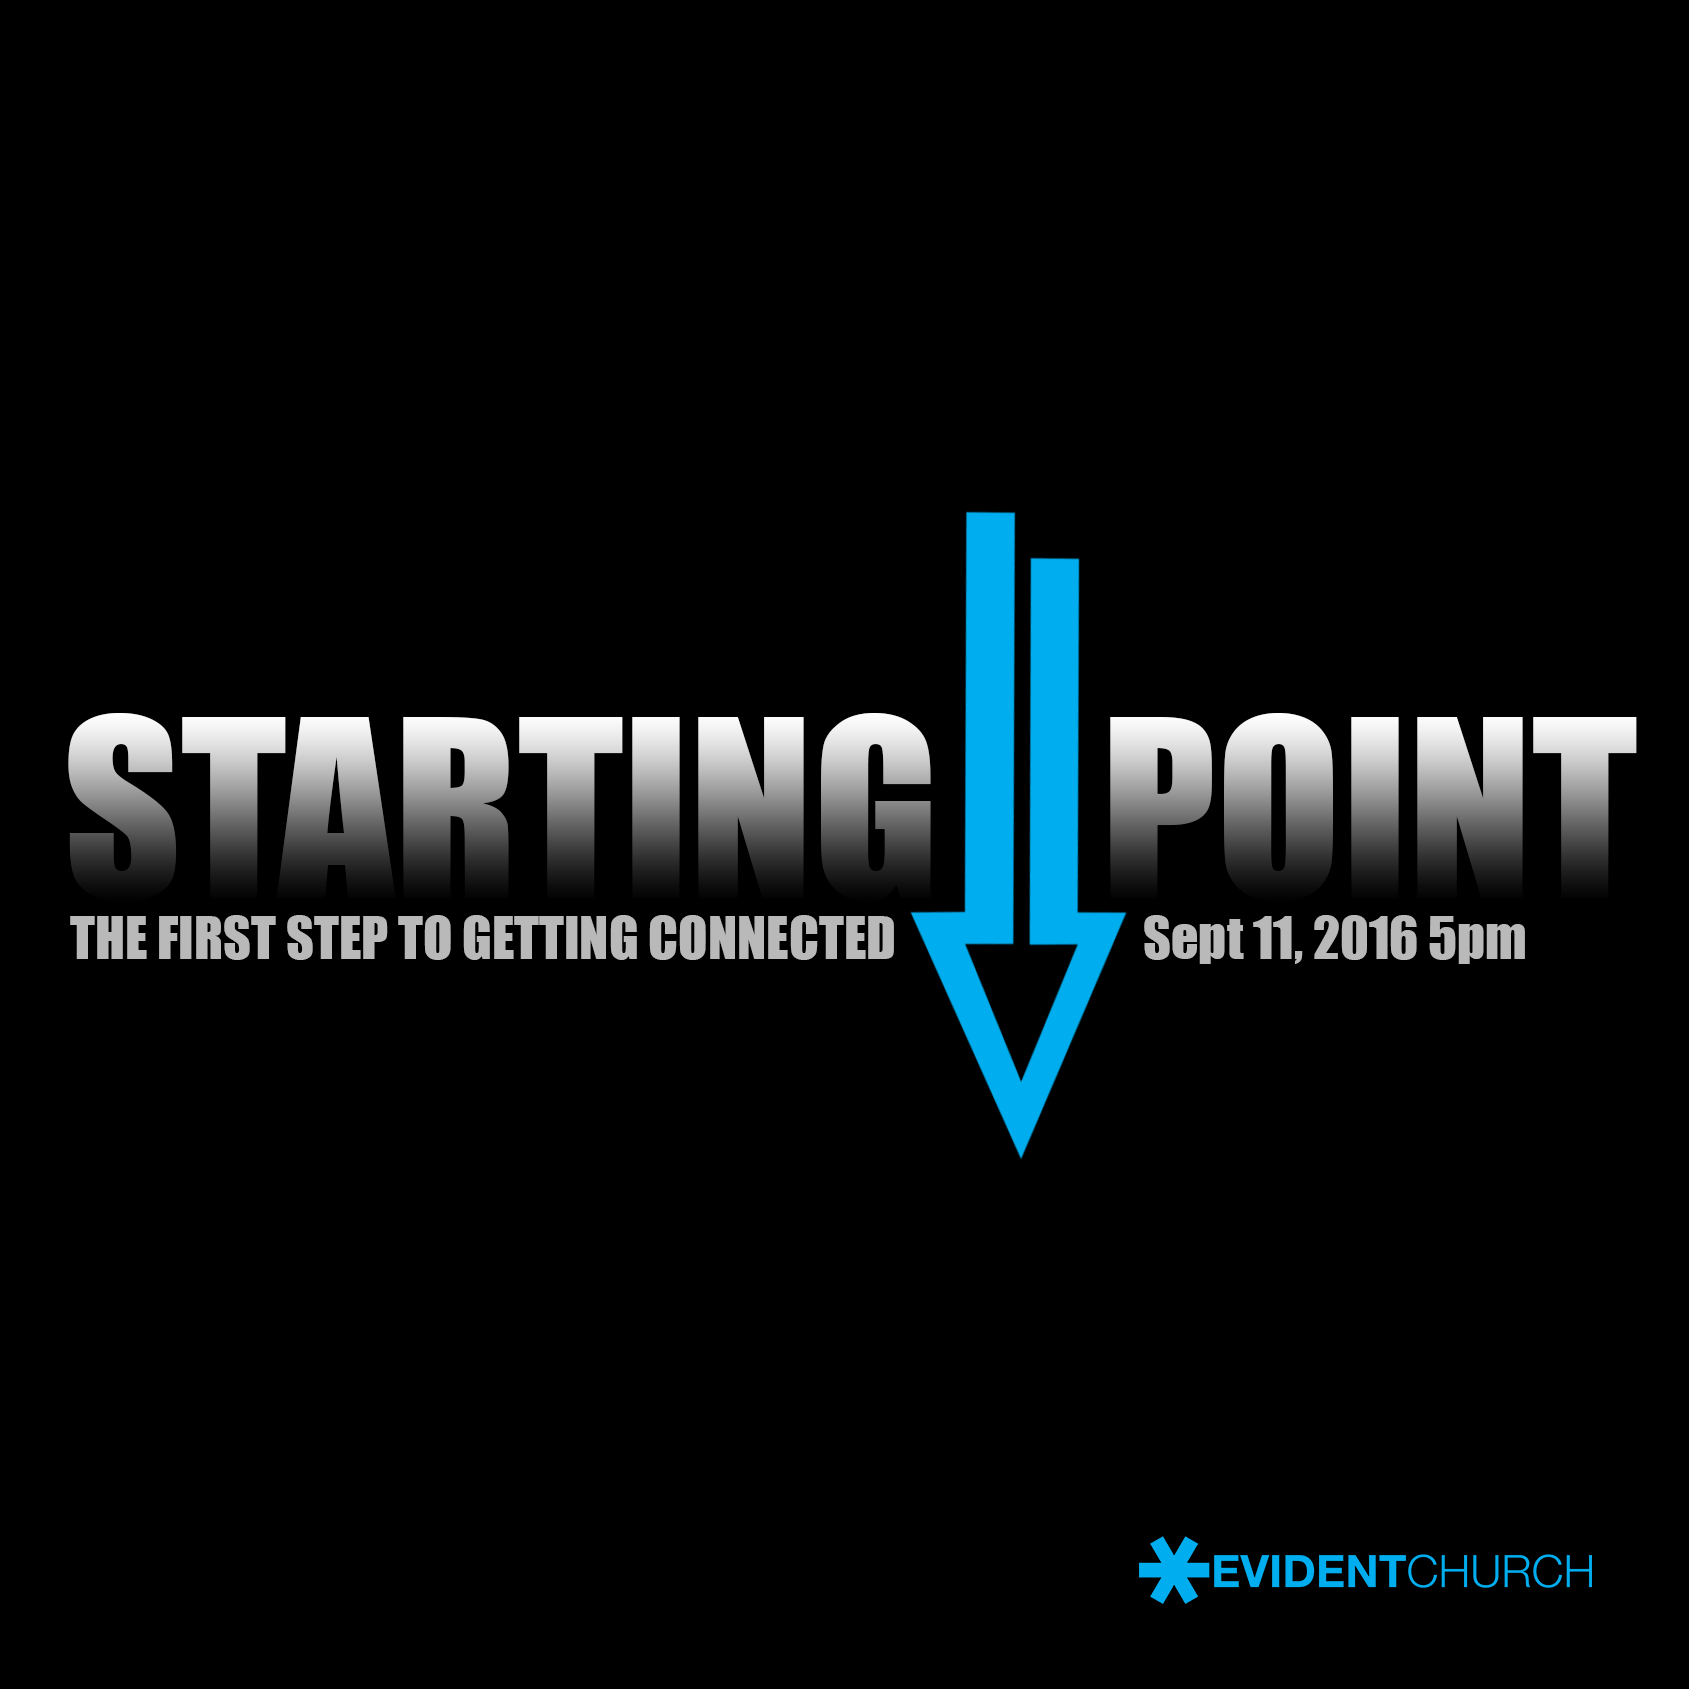 Starting Point091116IG.png